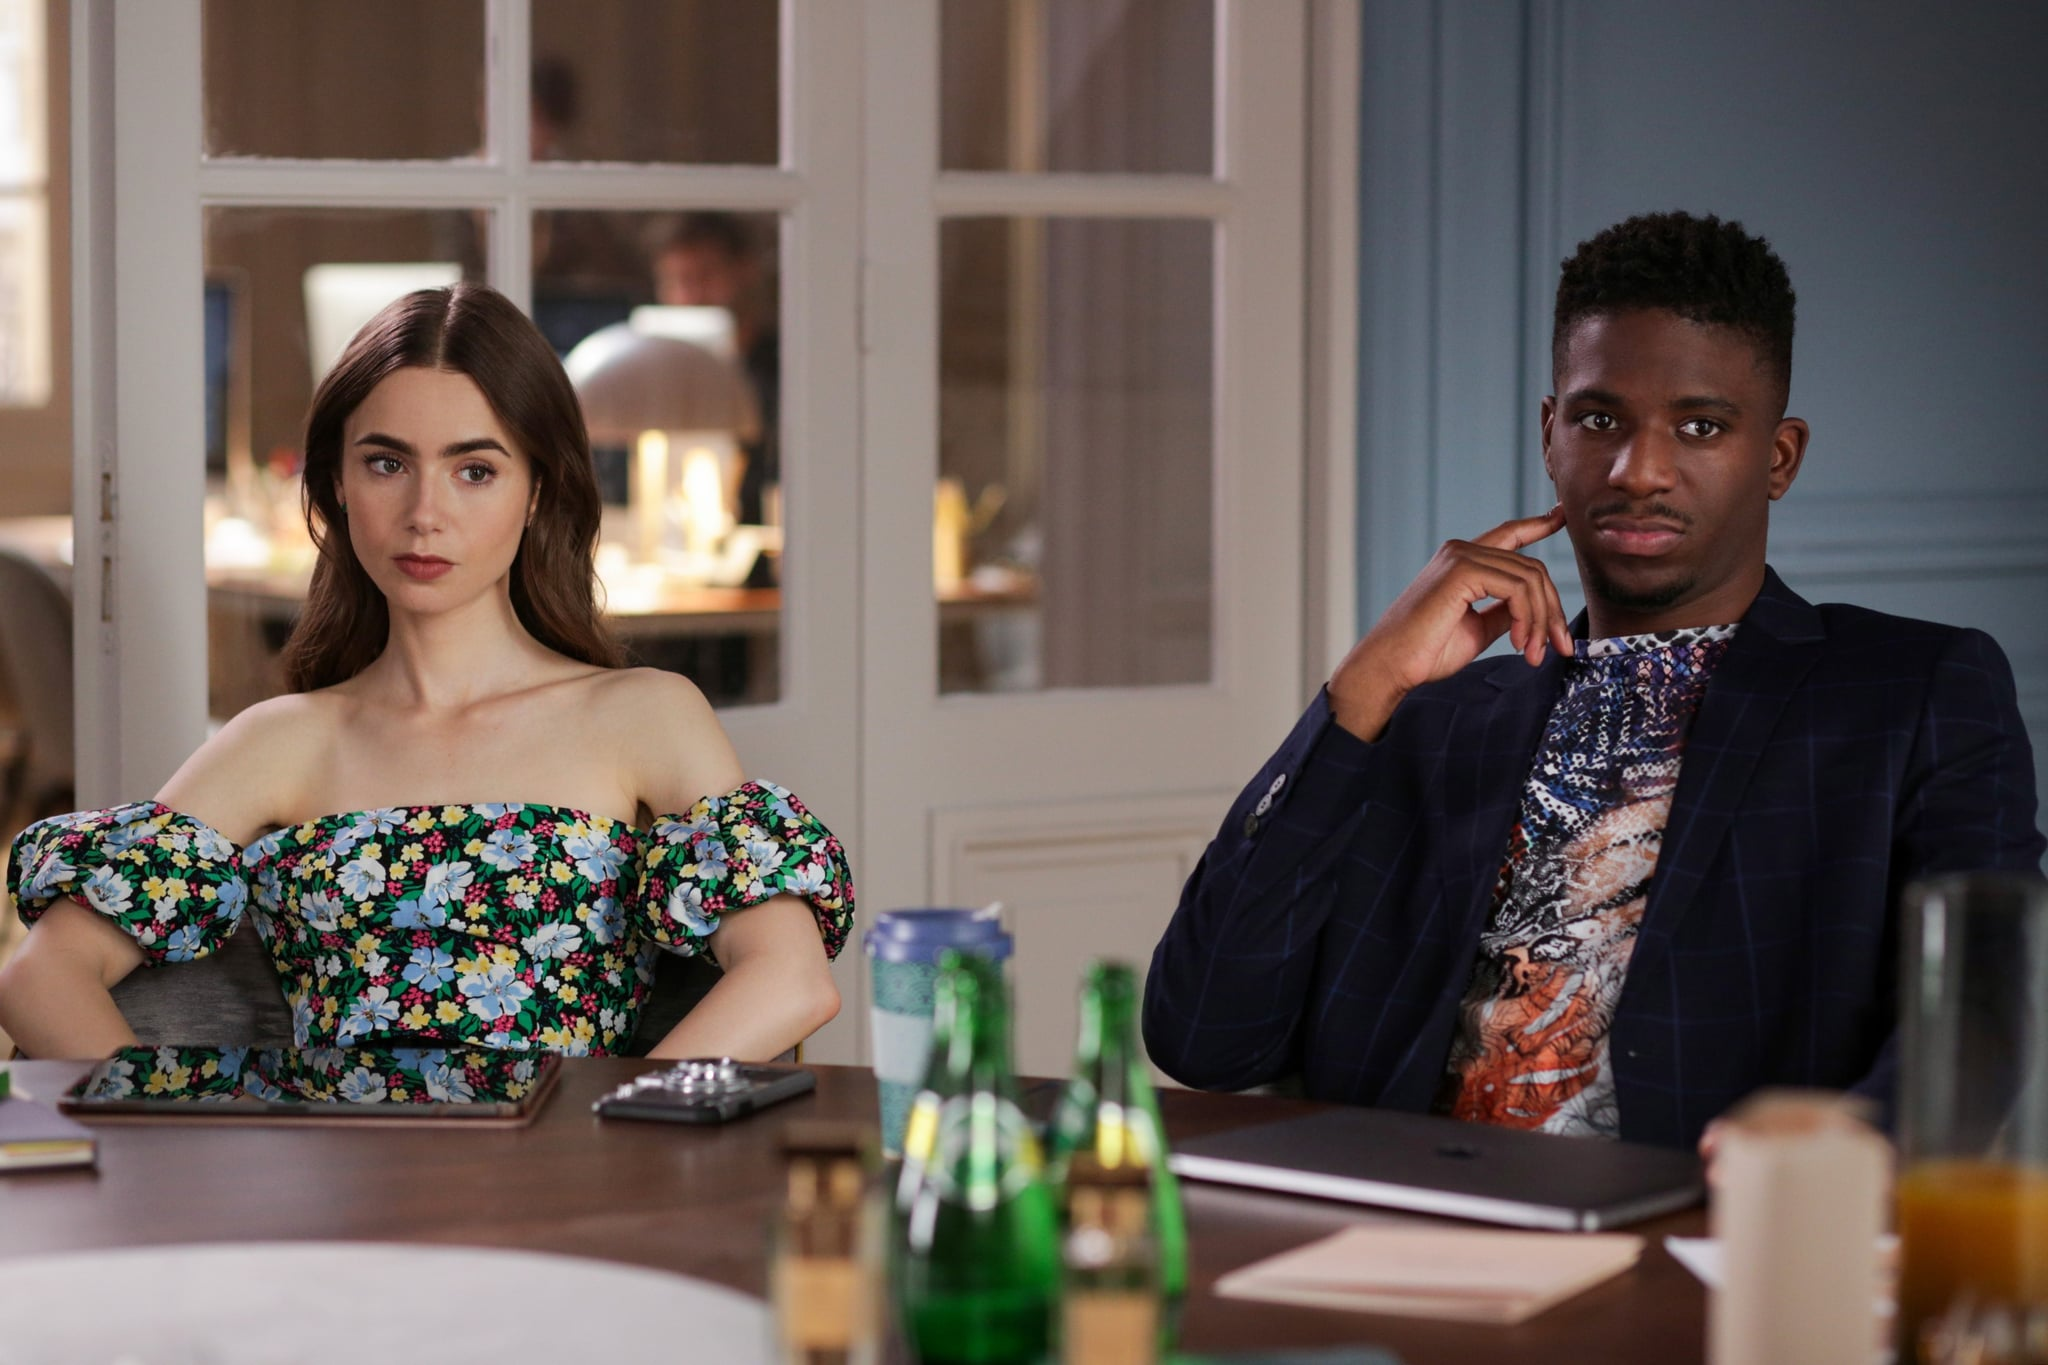 EMILY IN PARIS, from left: Lily Collins, Samuel Arnold, (Season 1, ep. 103, aired Oct. 2, 2020). photo: Carole Bethuel / Netflix / Courtesy Everett Collection